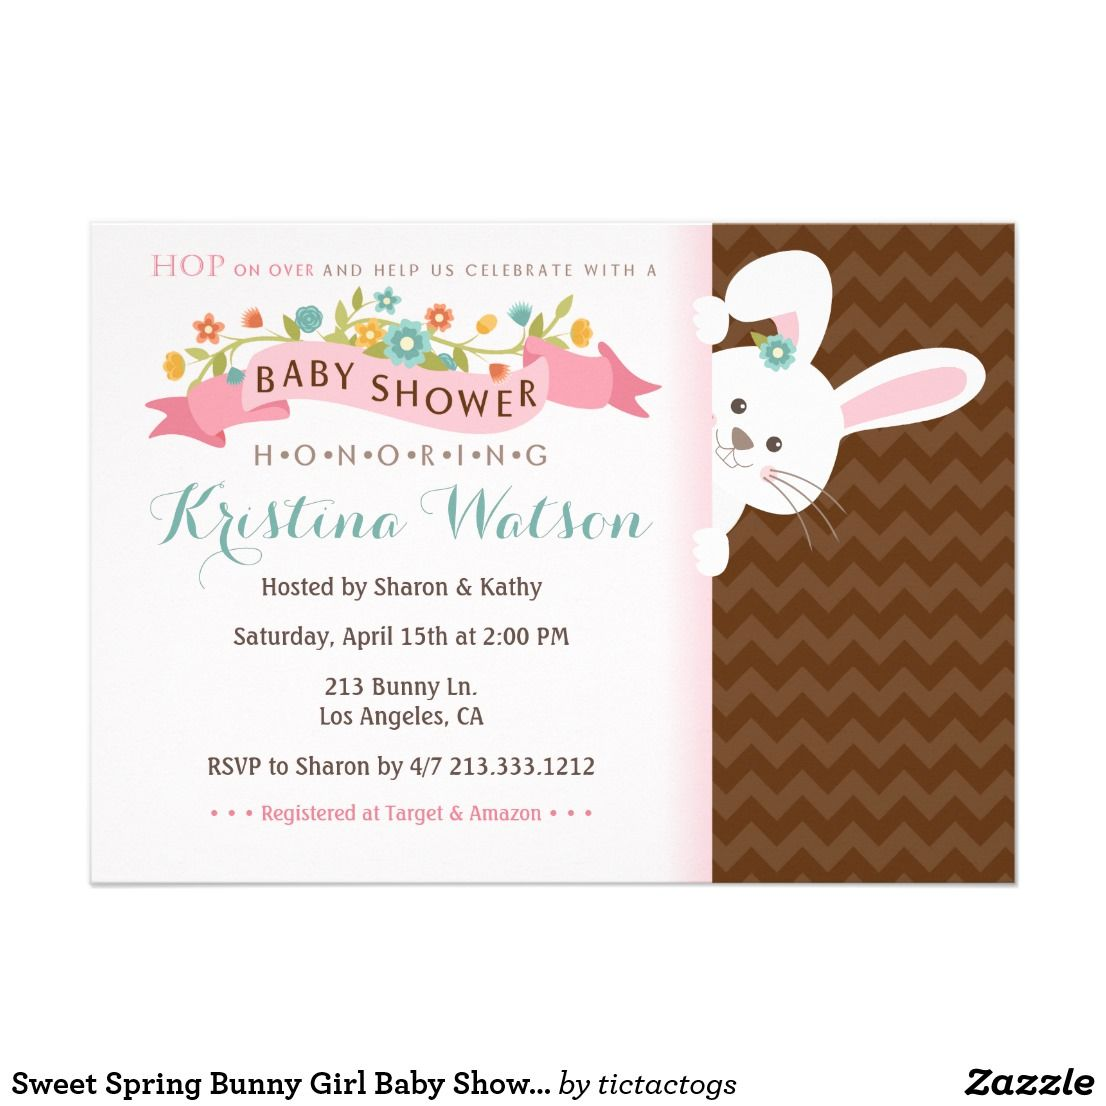 Sweet Spring Bunny Girl Baby Shower Invitation